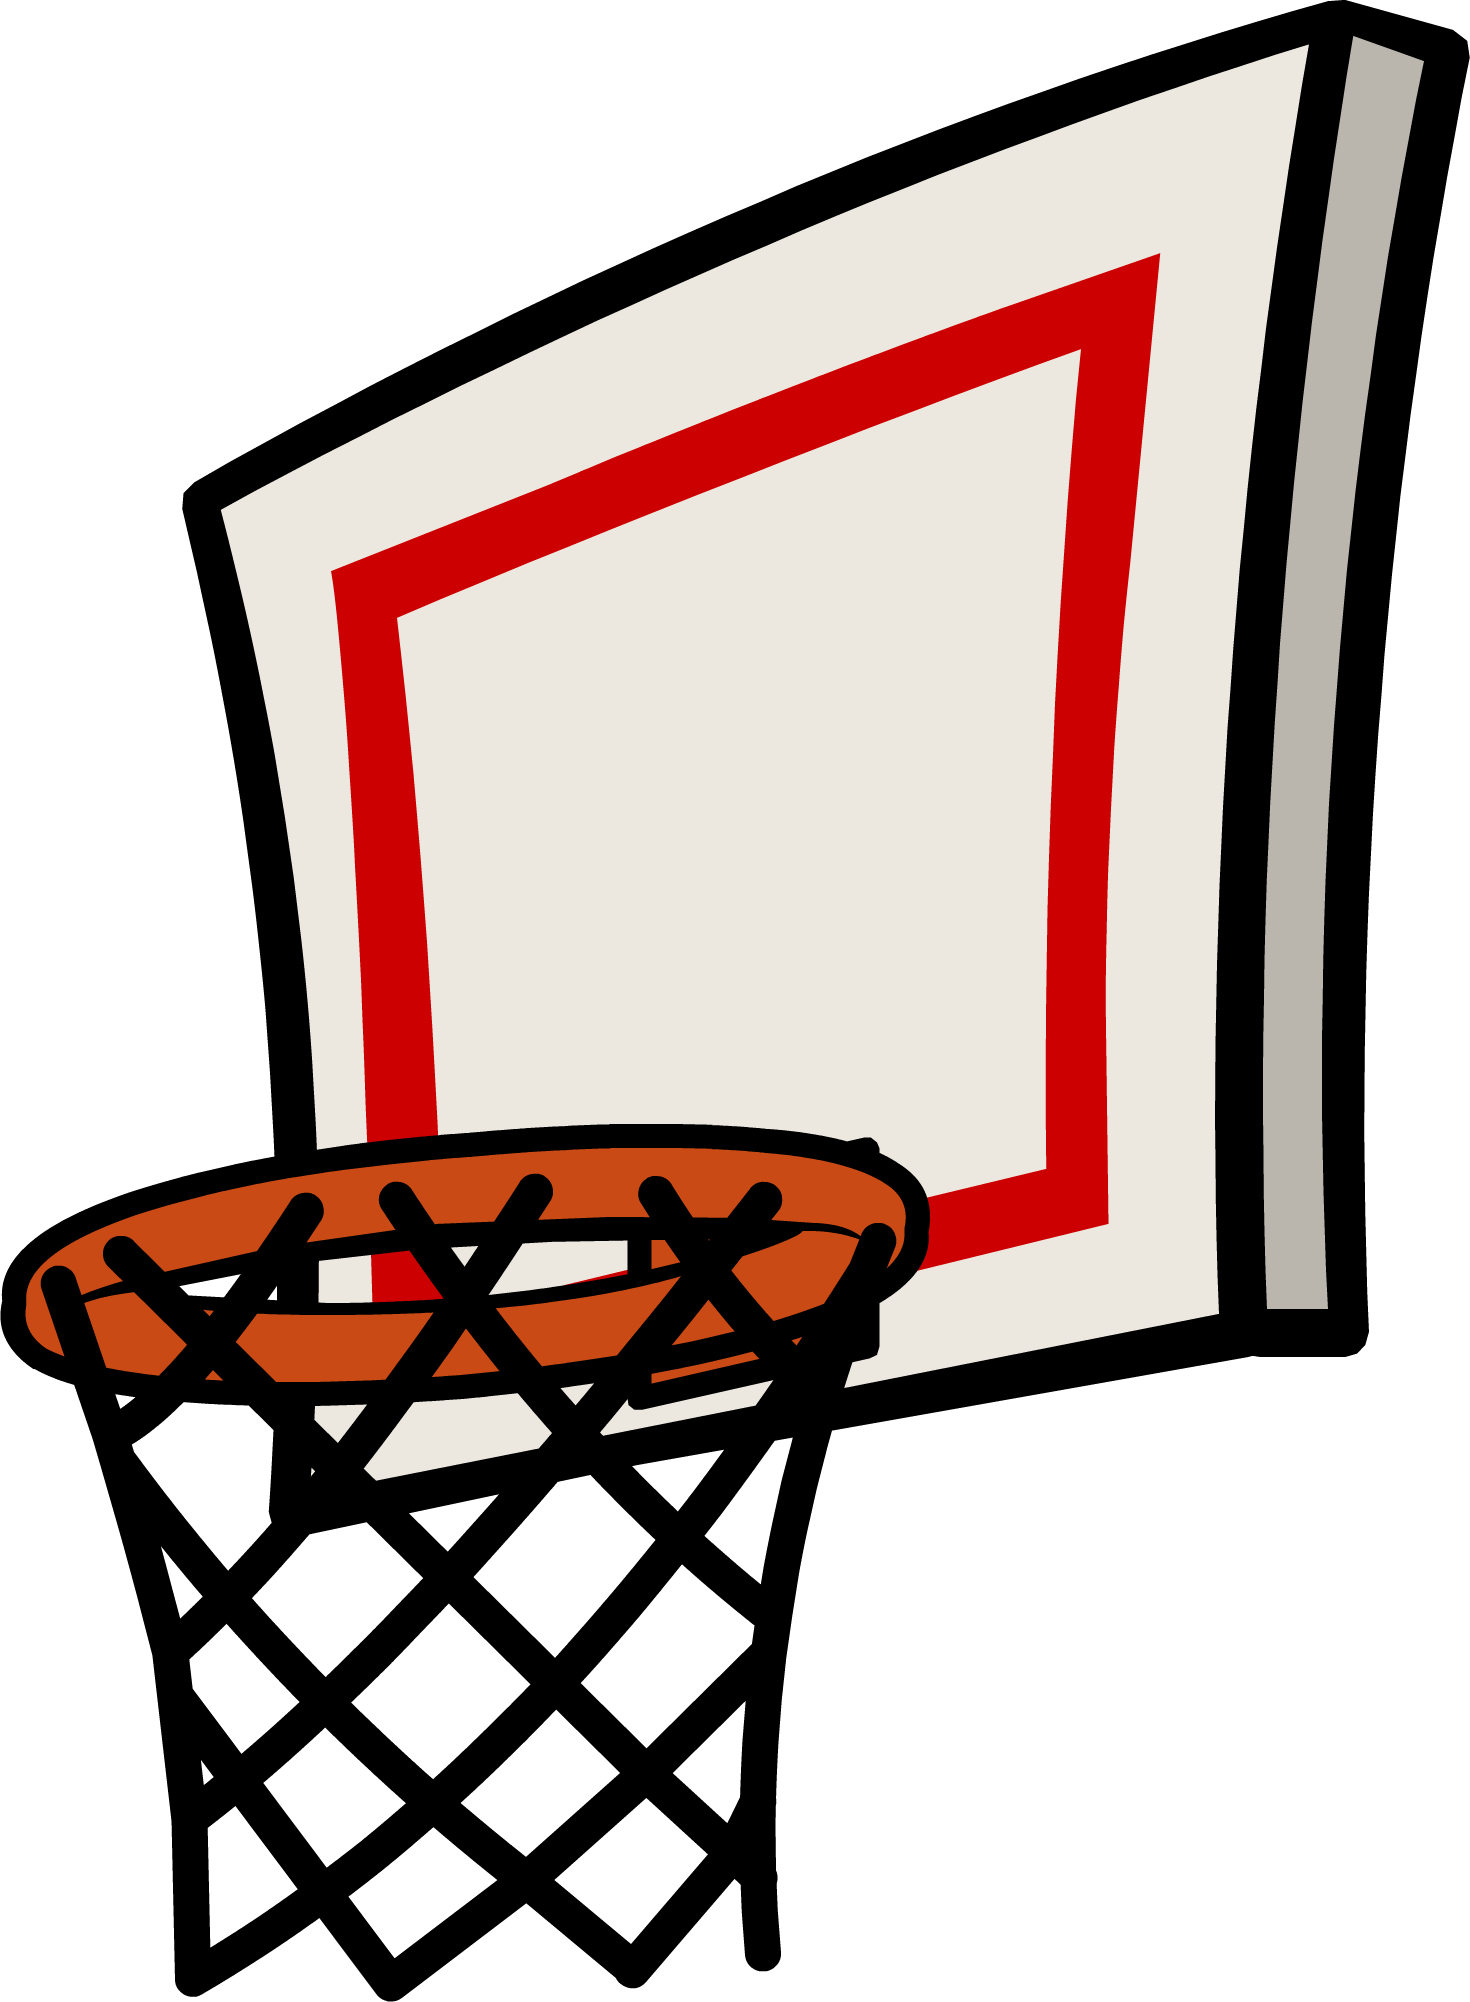 Distressed basketball and net clipart png transparent library 28+ Collection of Basketball Goal Clipart Transparent | High quality ... png transparent library